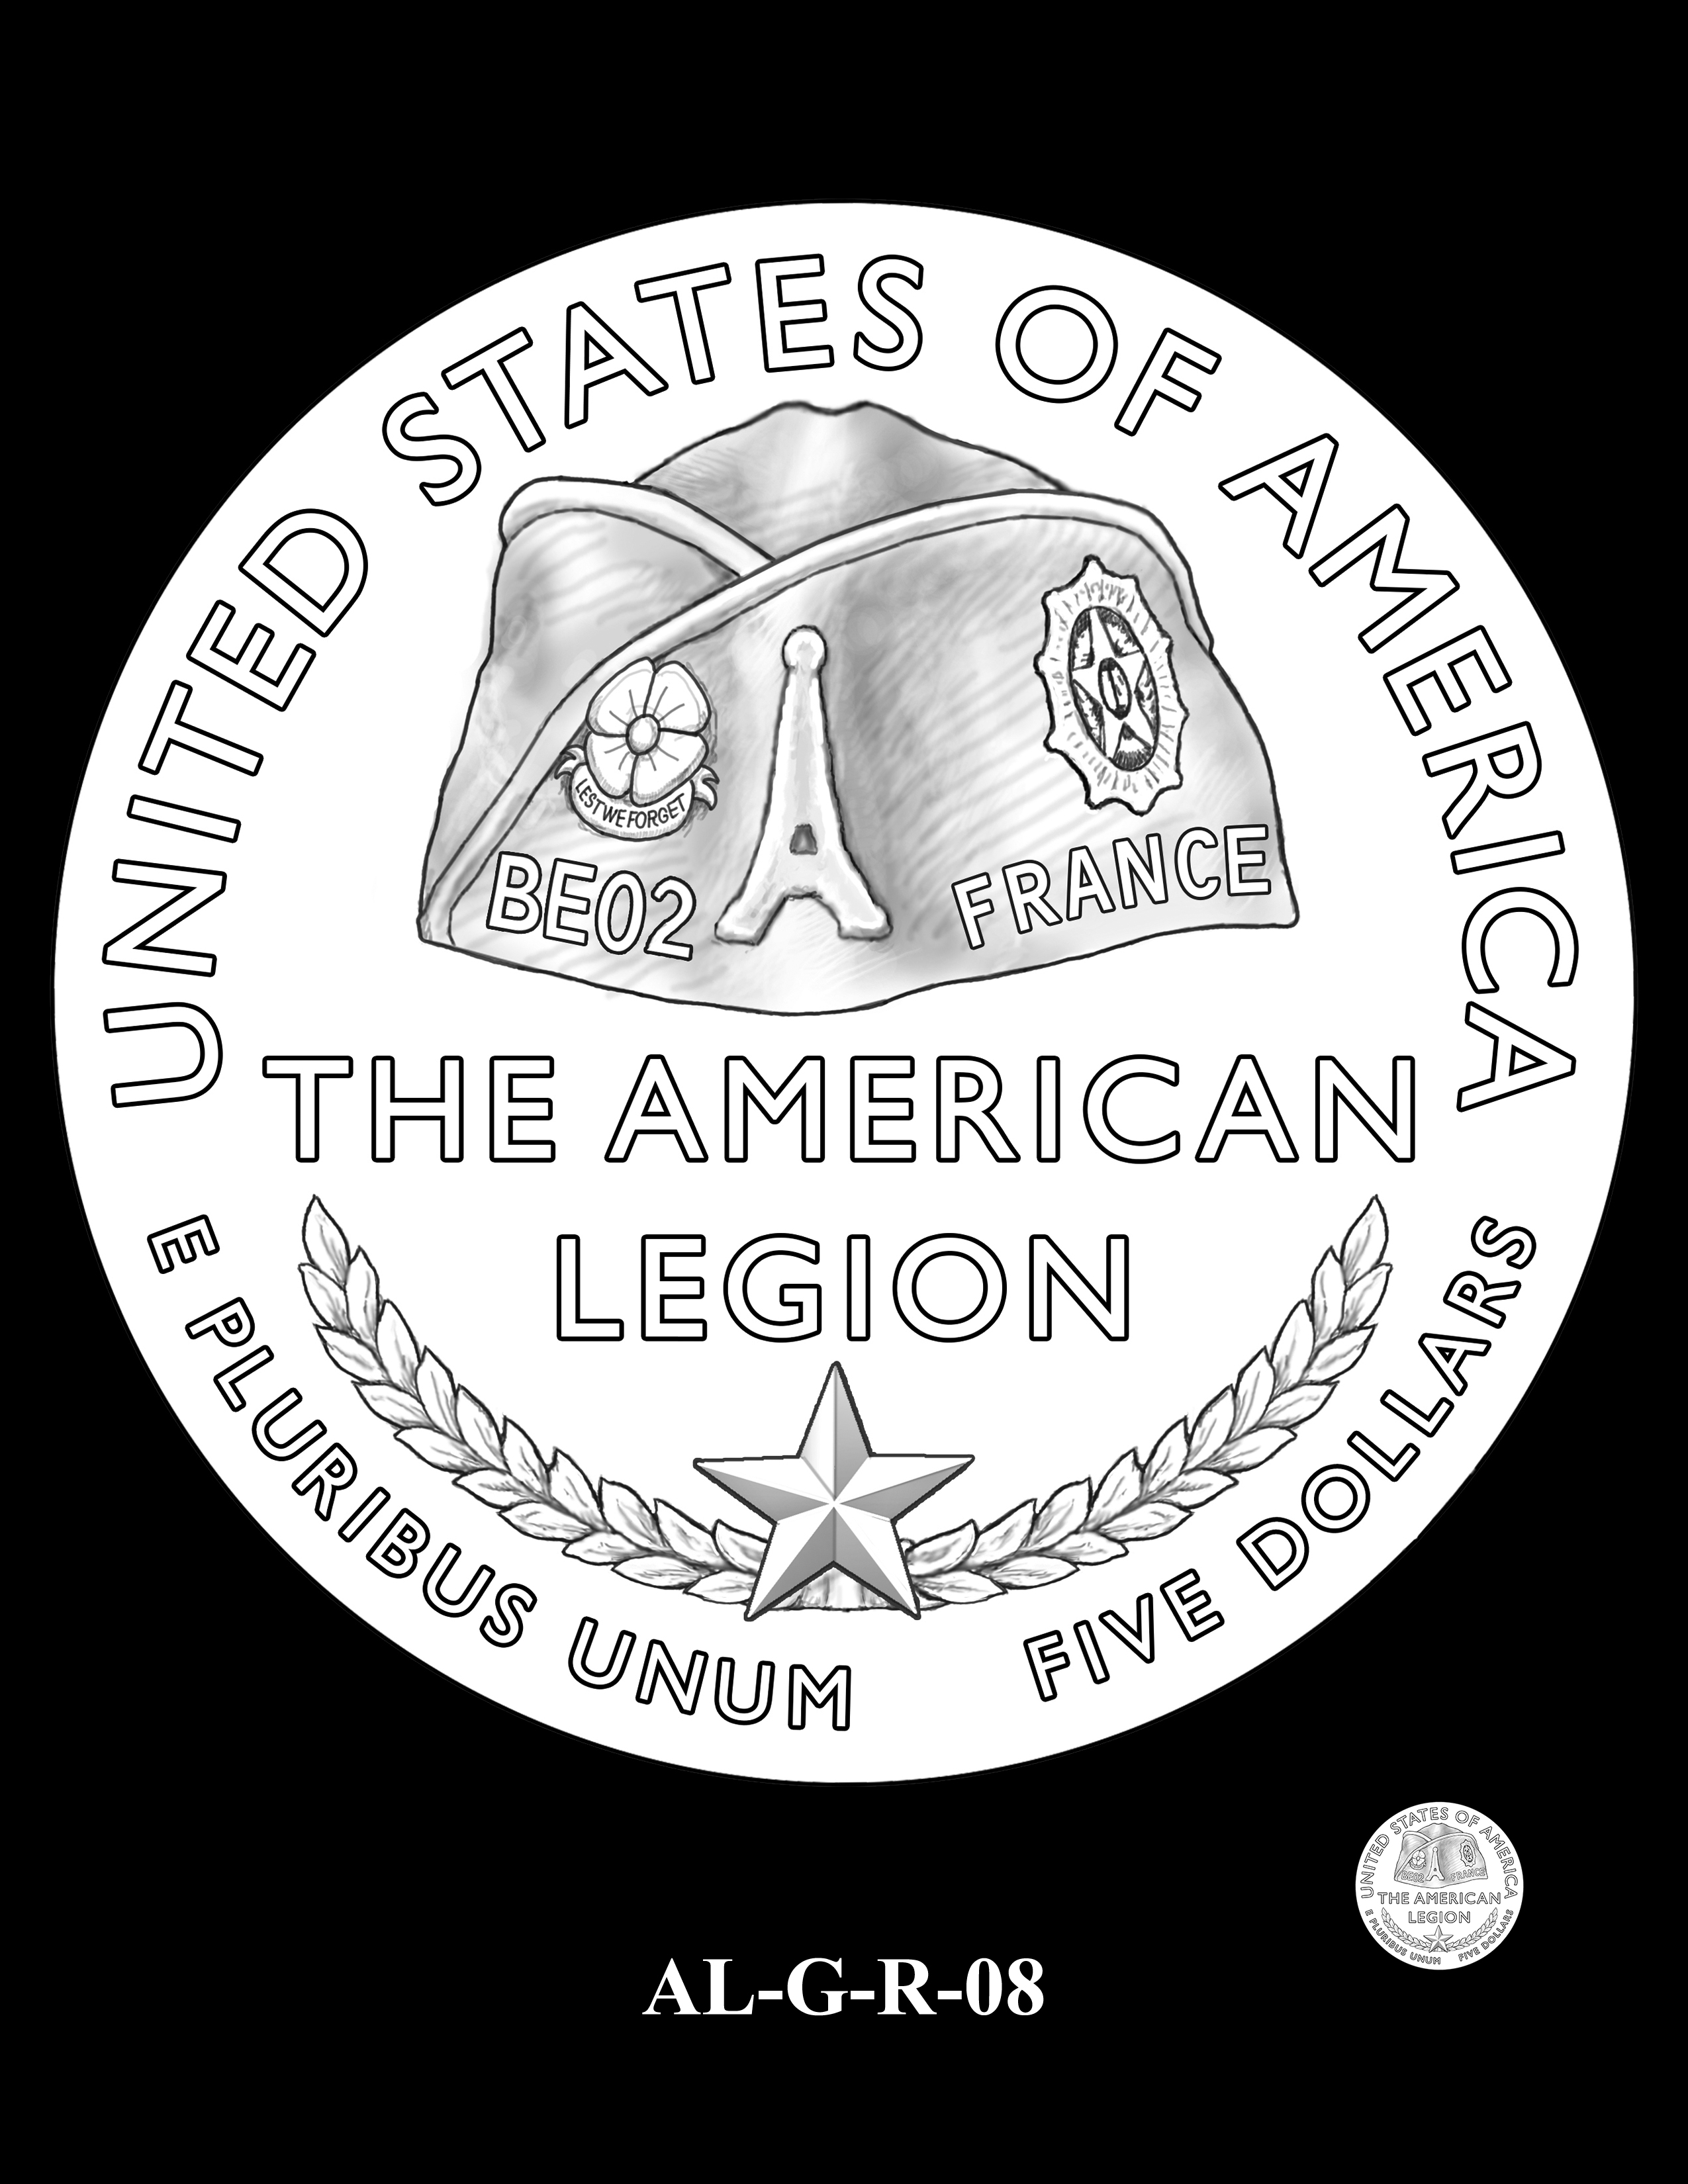 AL-G-R-08 -- 2019 American Legion 100th Anniversary Commemorative Coin Program - Gold Reverse